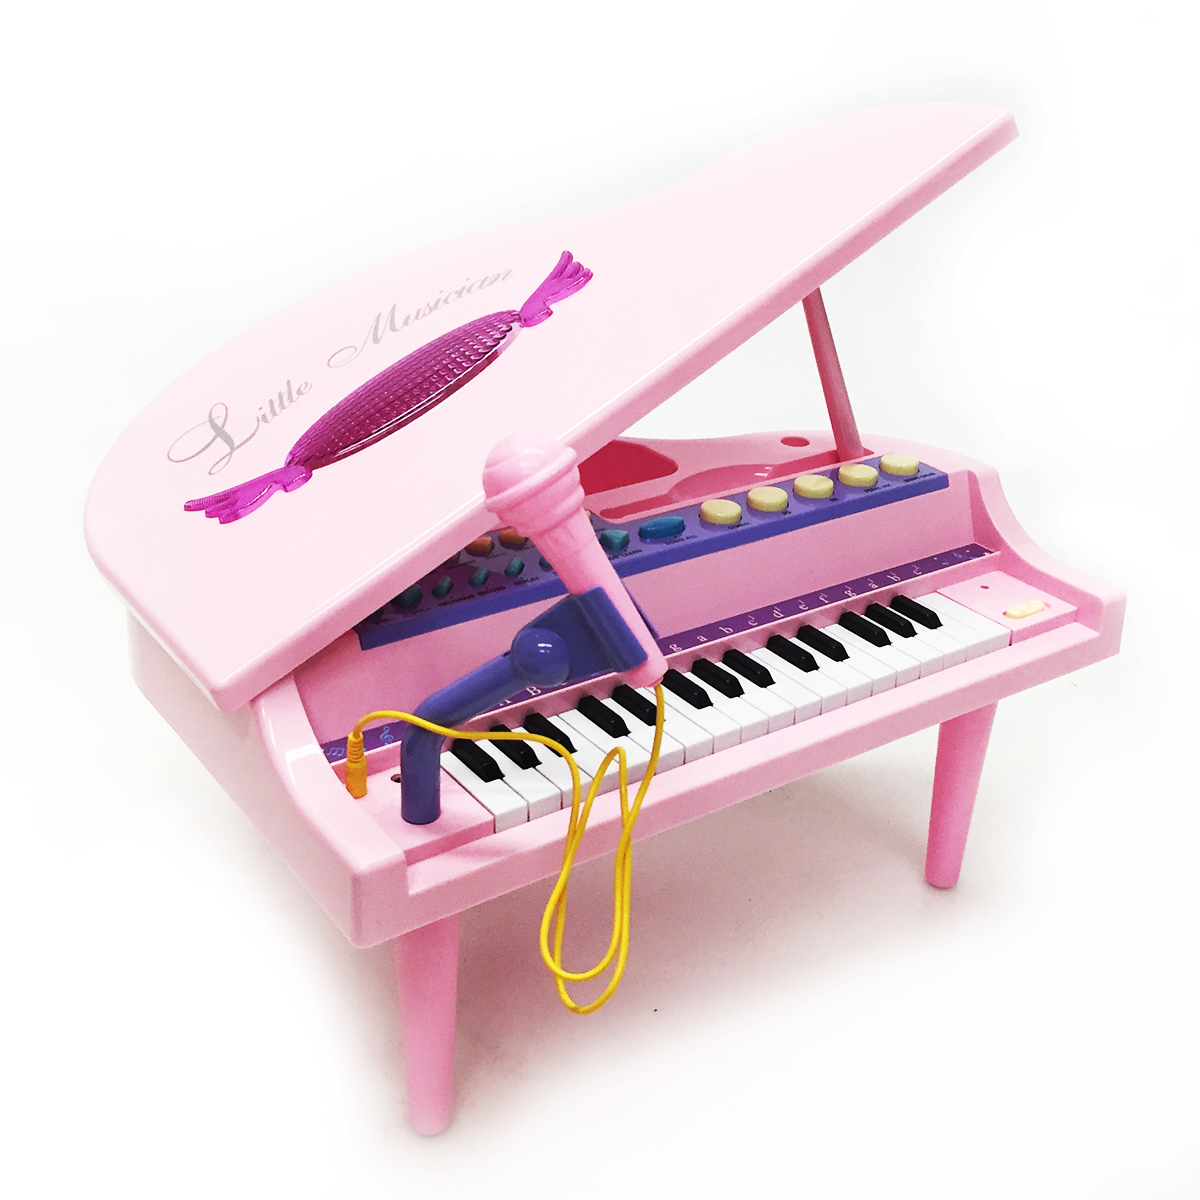 Toy Violins For 3 And Up : Pink mini piano learn play microphone toy keyboard